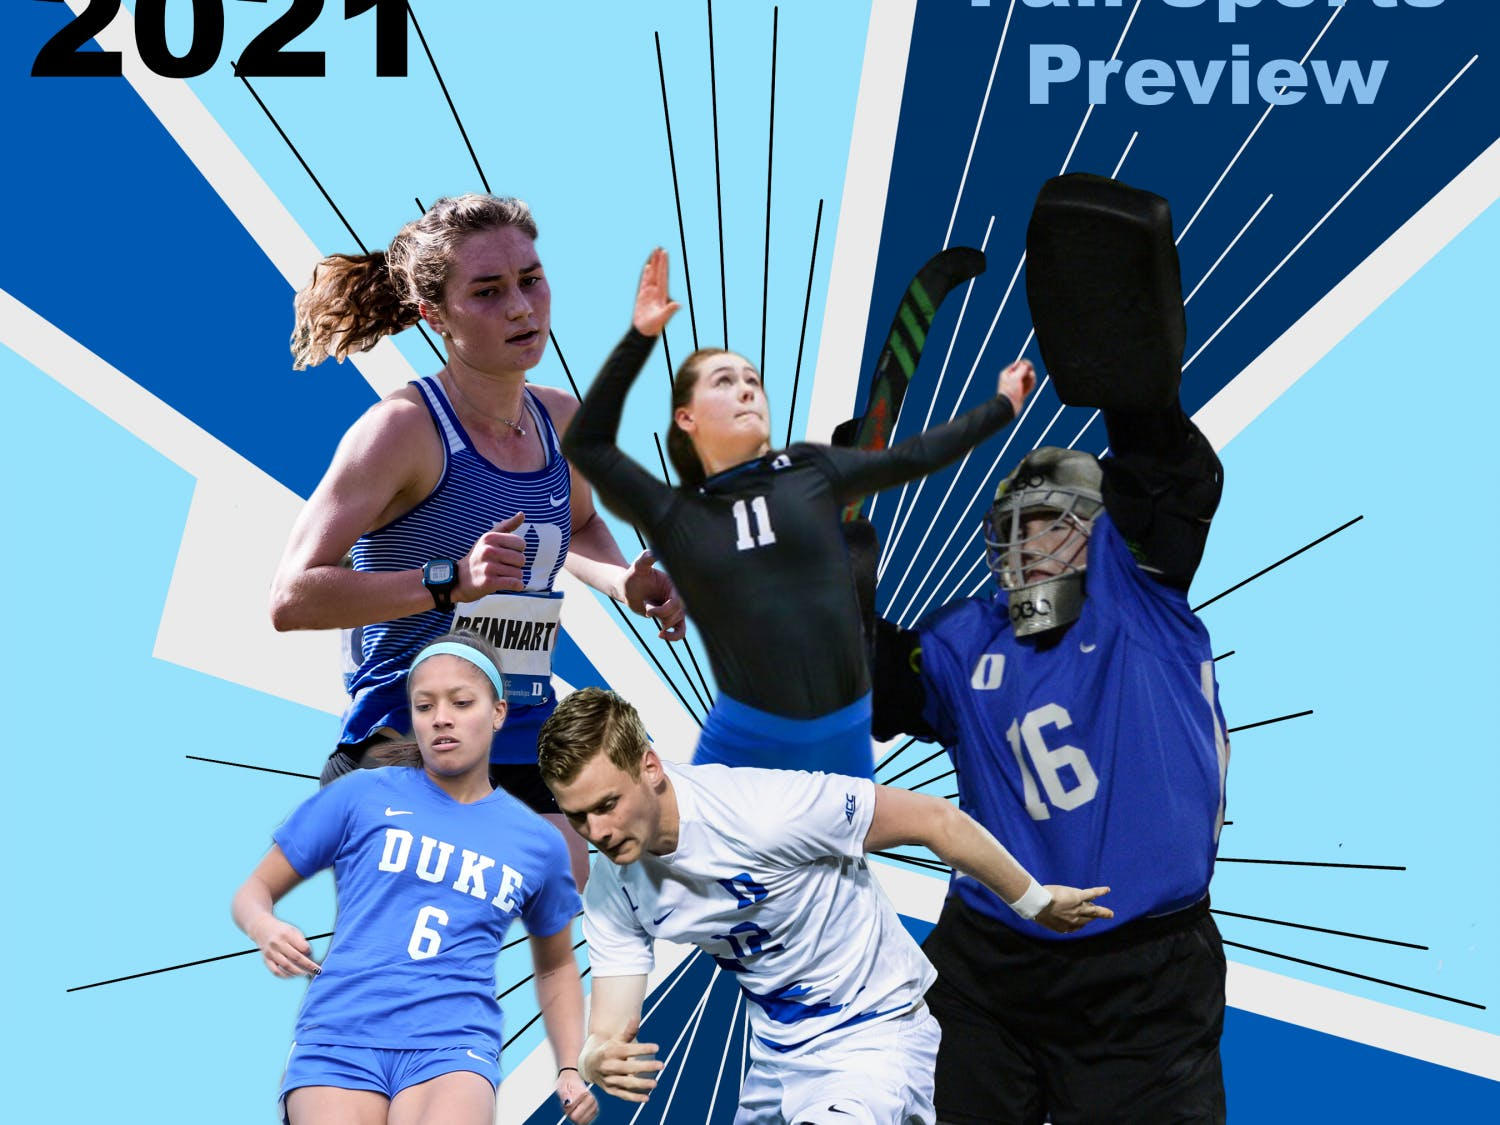 All of Duke's fall sports are set to be back in action this season.